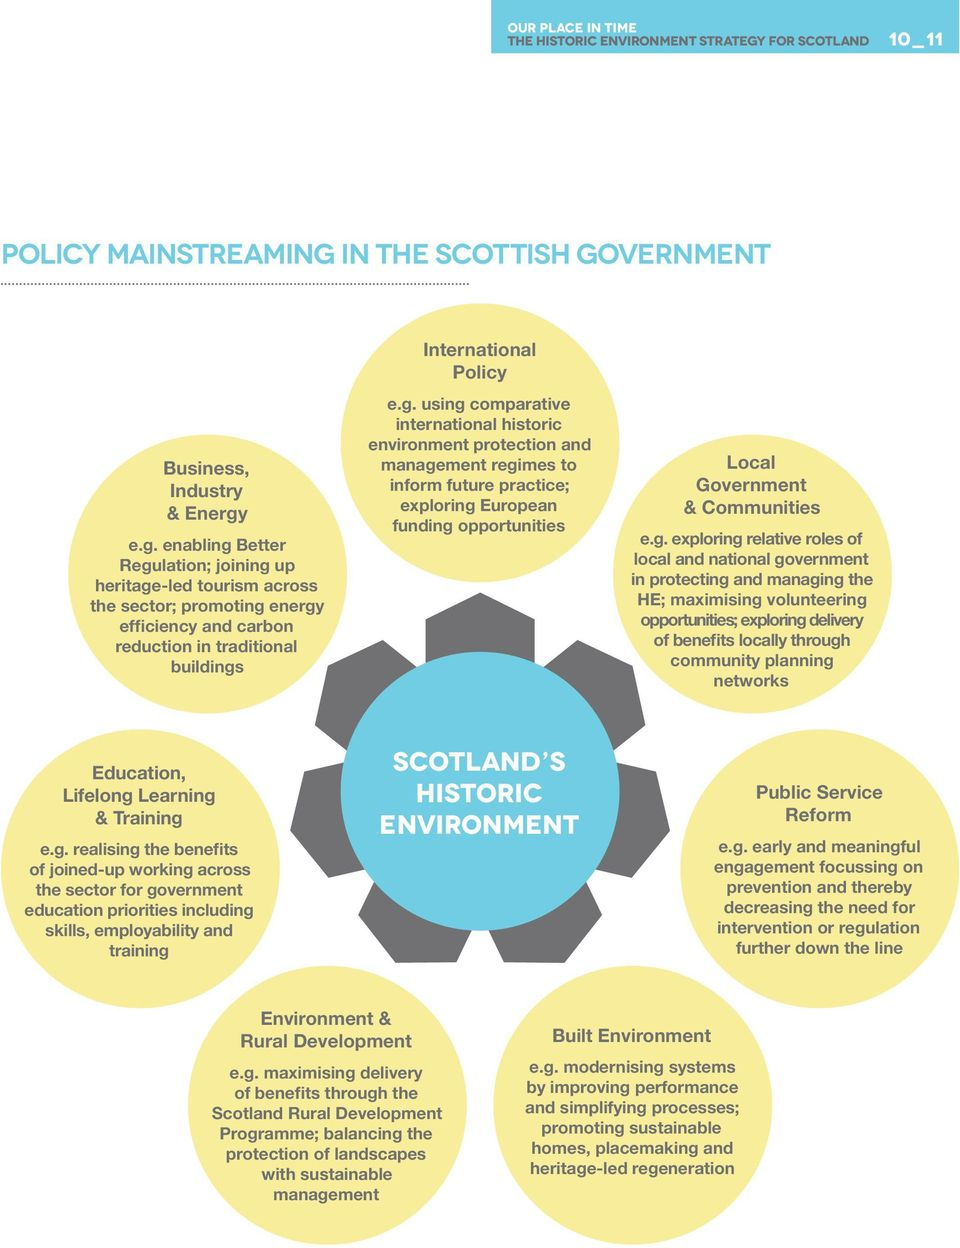 e.g. enabling Better Regulation; joining up heritage-led tourism across the sector; promoting energy efficiency and carbon reduction in traditional buildings International Policy e.g. using comparative international historic environment protection and management regimes to inform future practice; exploring European funding opportunities Local Government & Communities e.